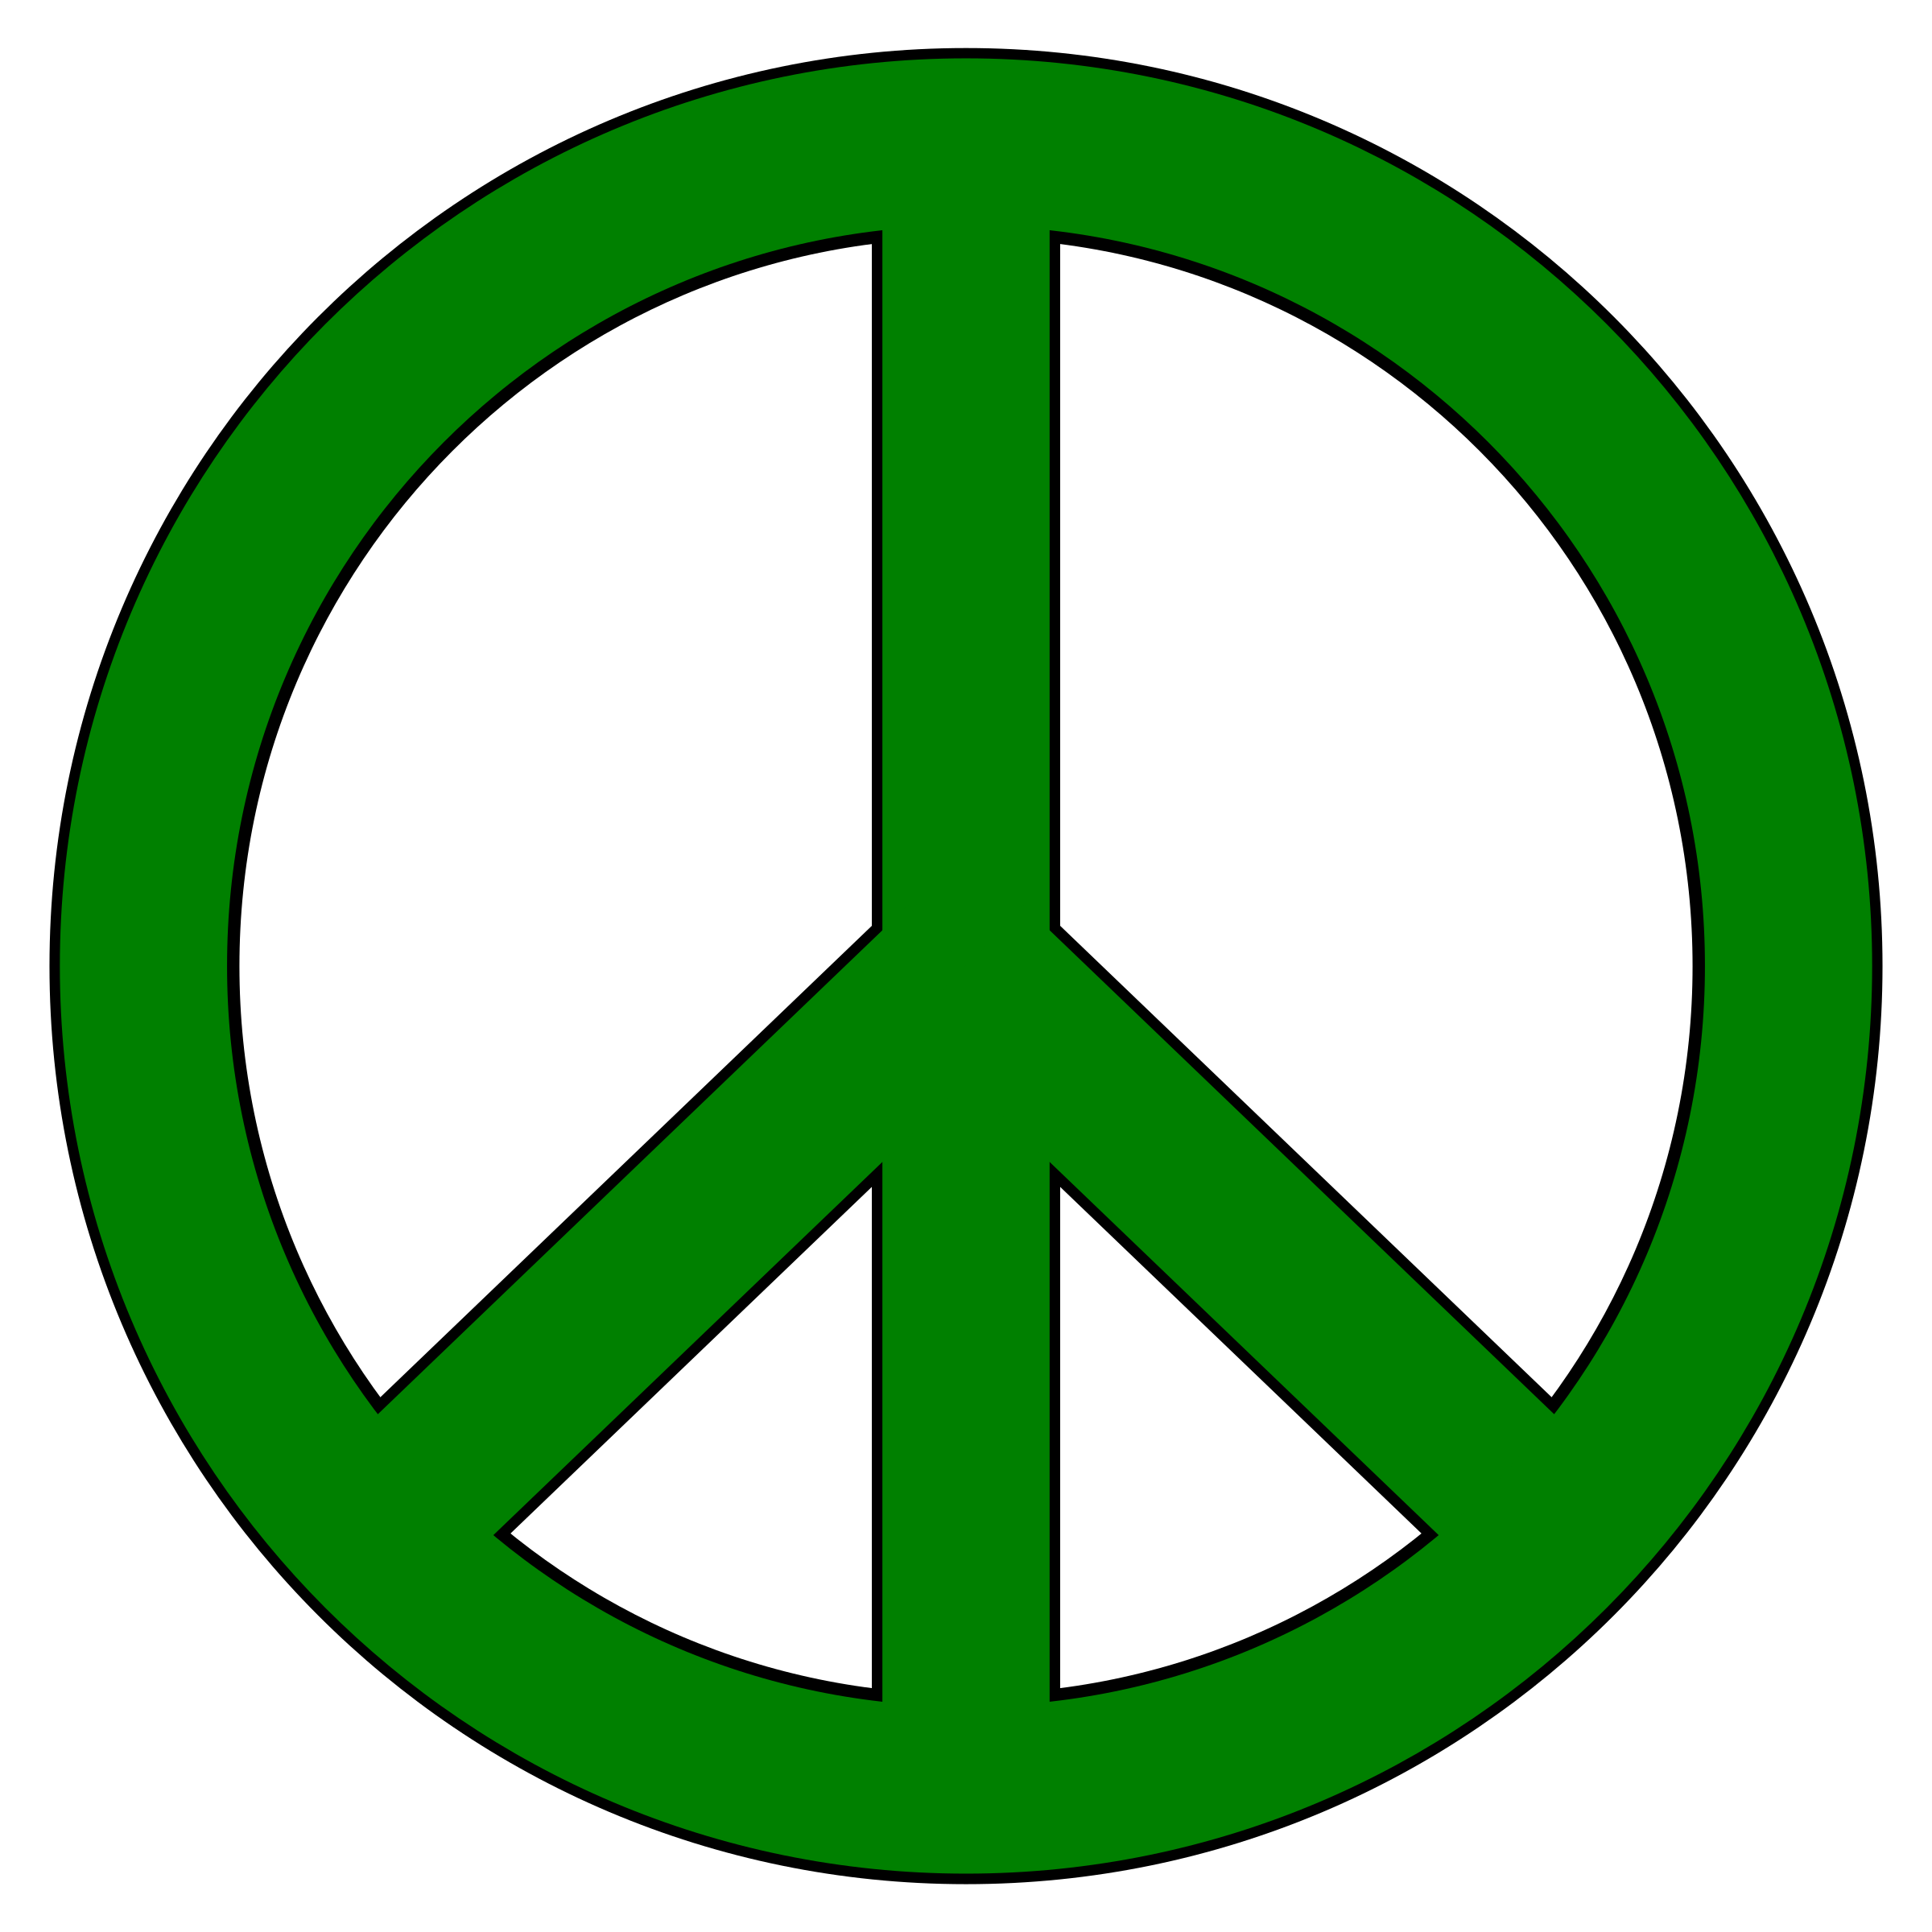 Green Peace Symbol, Black Border by LindsayBradford